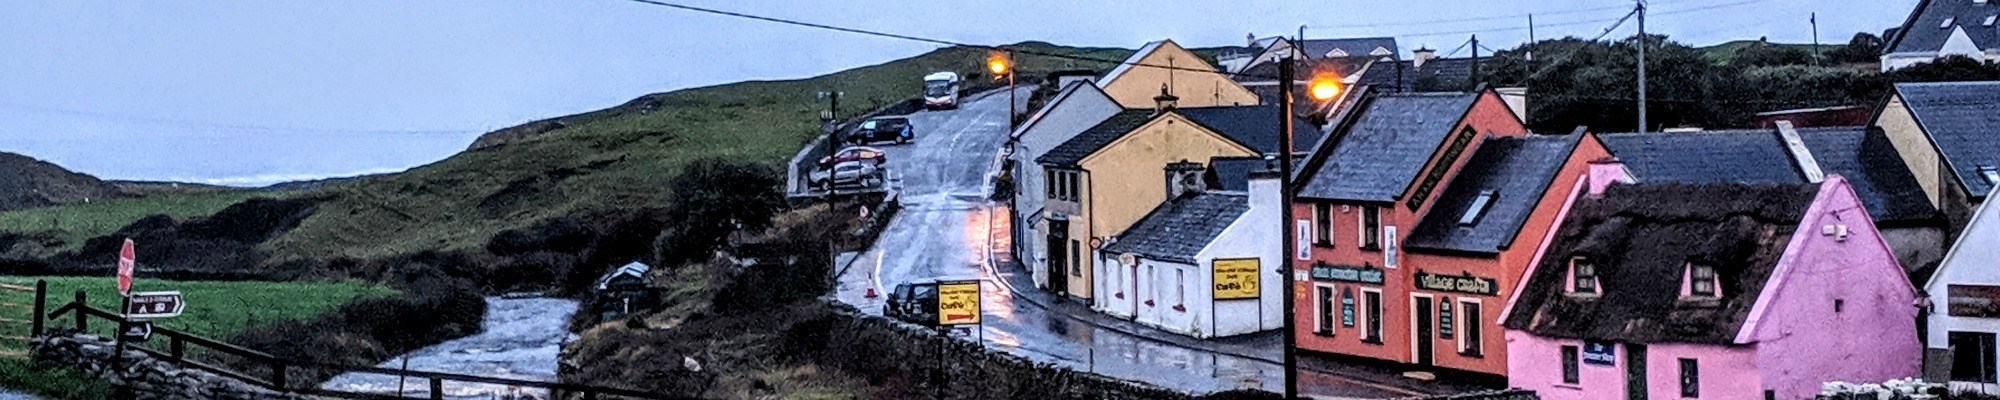 A rainy evening on Fisher Street in Doolin, Ireland